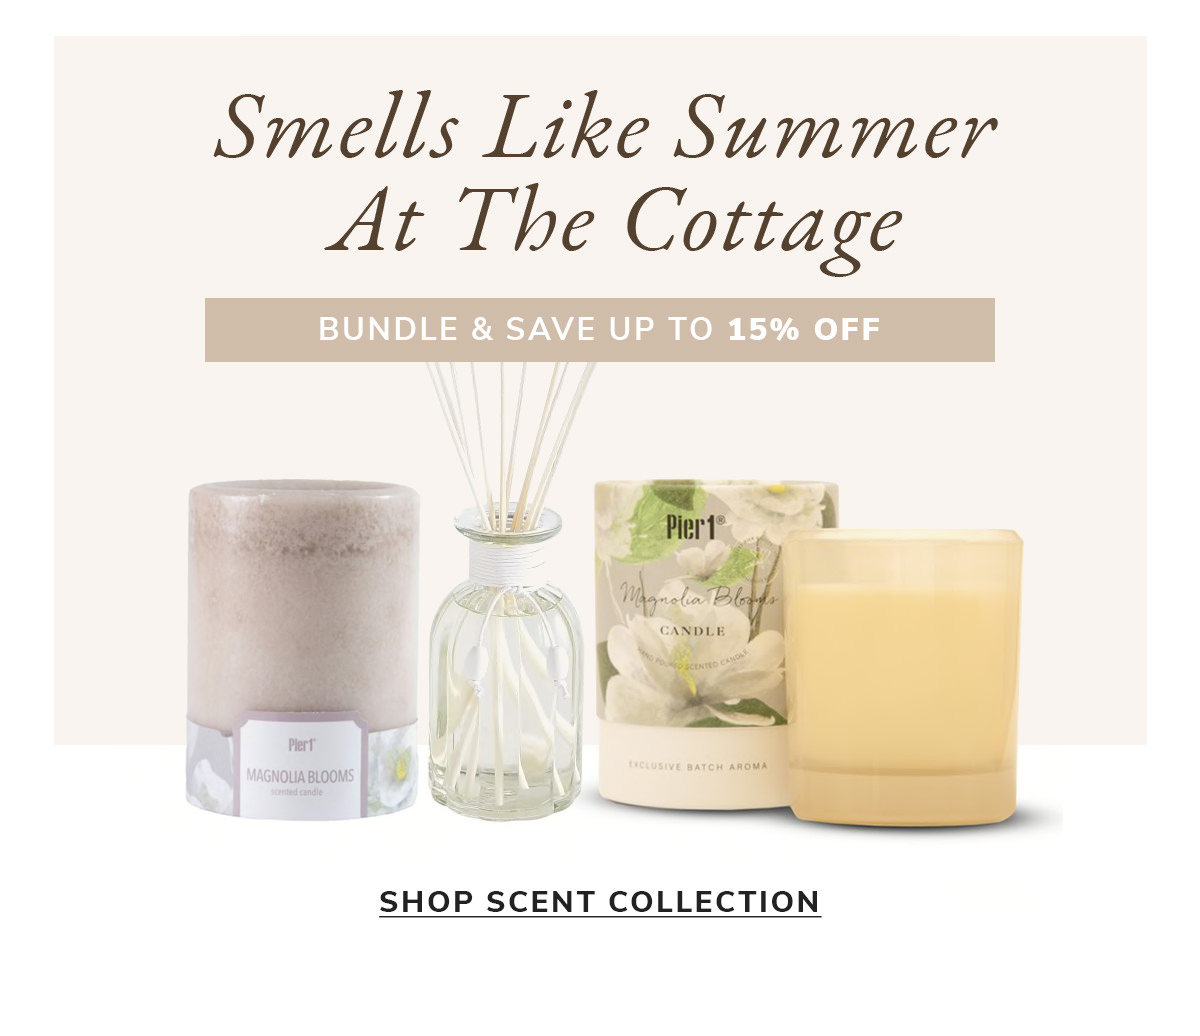 Smells like summer at the cottage. Bundle & Save up to 15%   SHOP SCENT COLLECTION